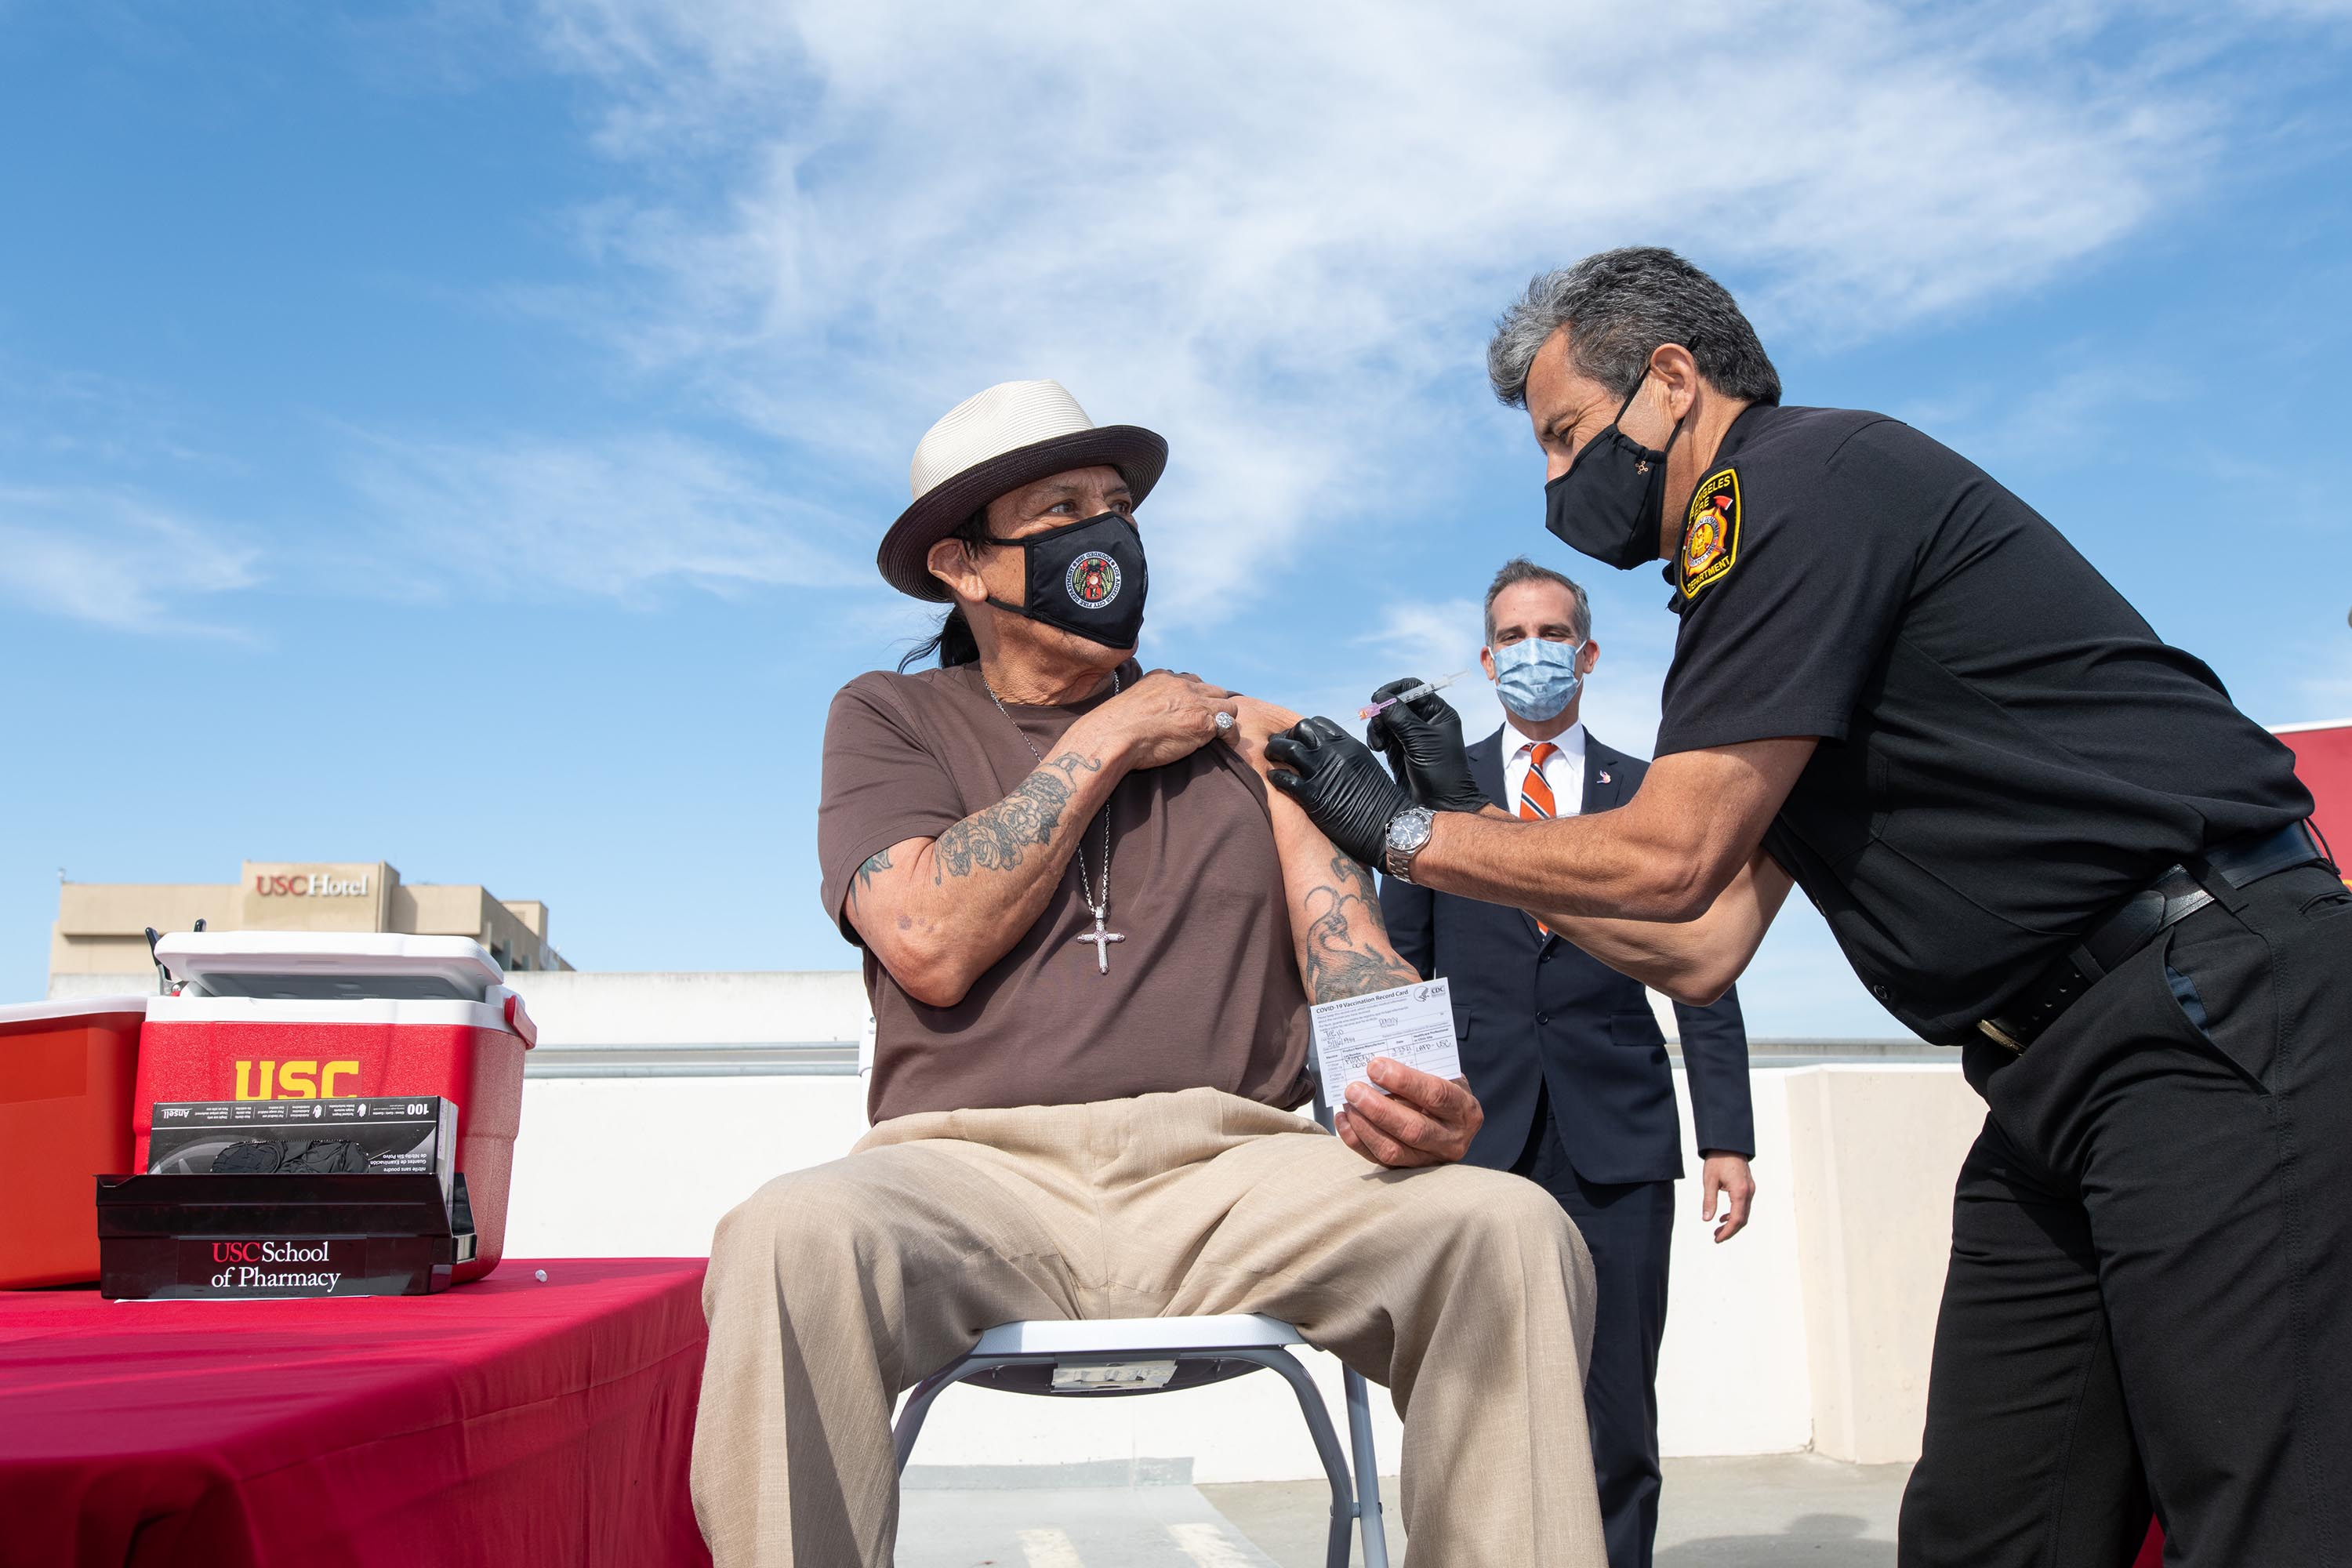 District 2 – Supervisor Holly J Mitchell<br> <b>March 24, 2021 - Actor Danny Trejo gets his COVID-19 vaccination at USC.</b><br><i>Photo by Bryan Chan / Board of Supervisors</i>